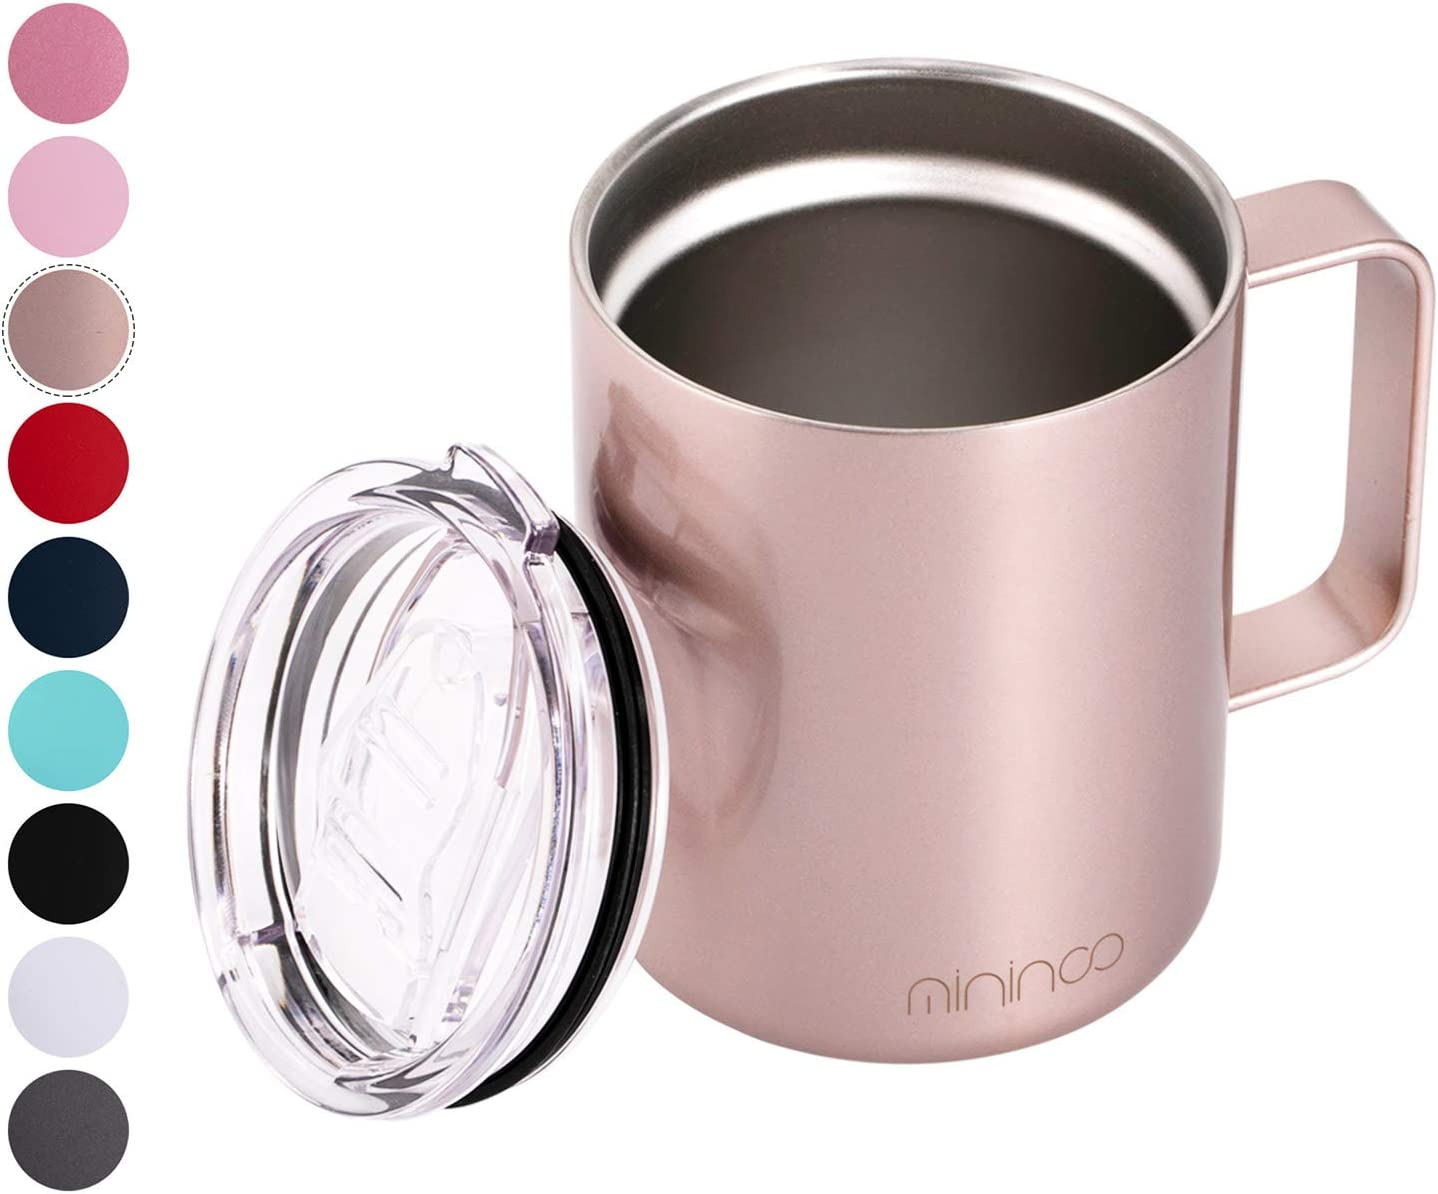 Stainless Steel Insulated Coffee Mug Cup with Handle,12OZ Double Wall Vacuum Travel Coffee Tumbler Mug with Lid Rose Gold